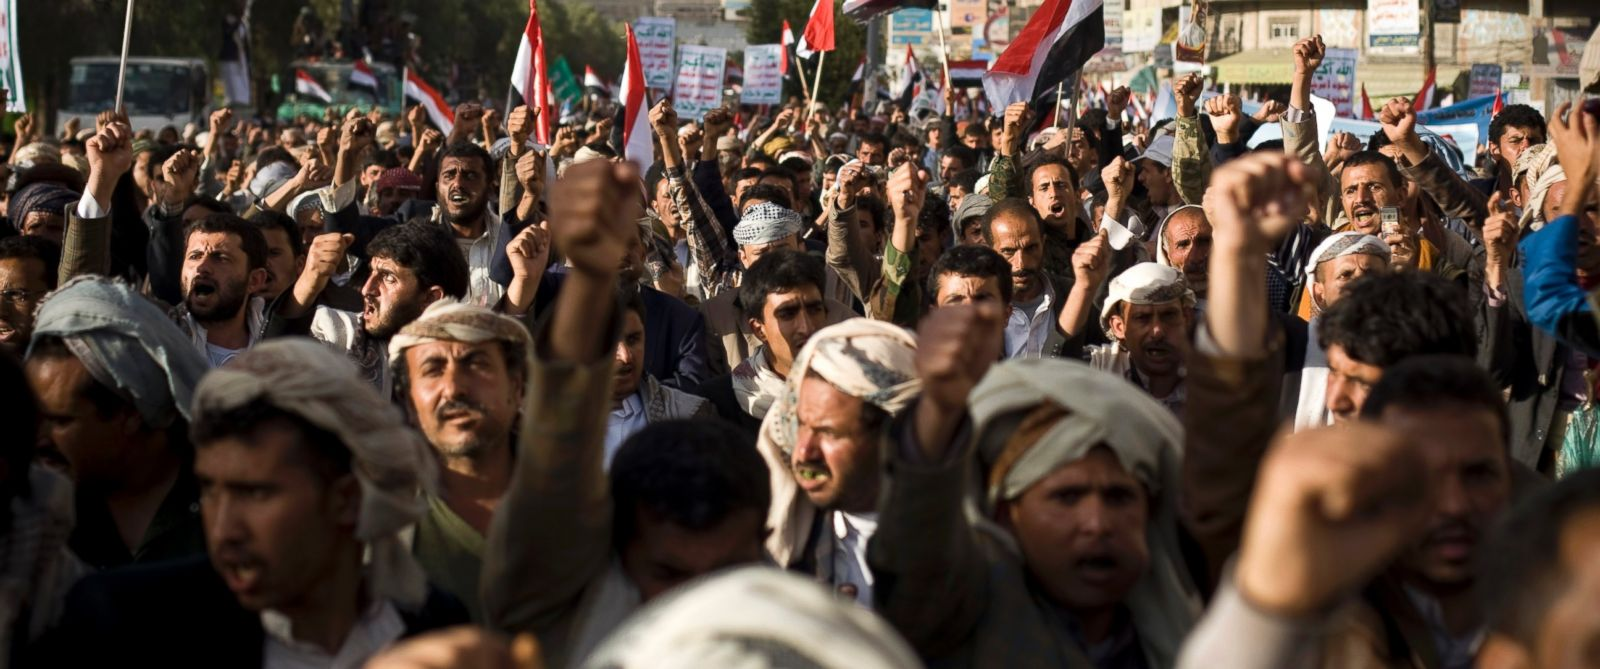 PHOTO: Supporters of Houthi Shiites shout slogans while marching on a street as they celebrate the fourth anniversary of the uprising in Sanaa, Yemen, Feb. 11, 2015.